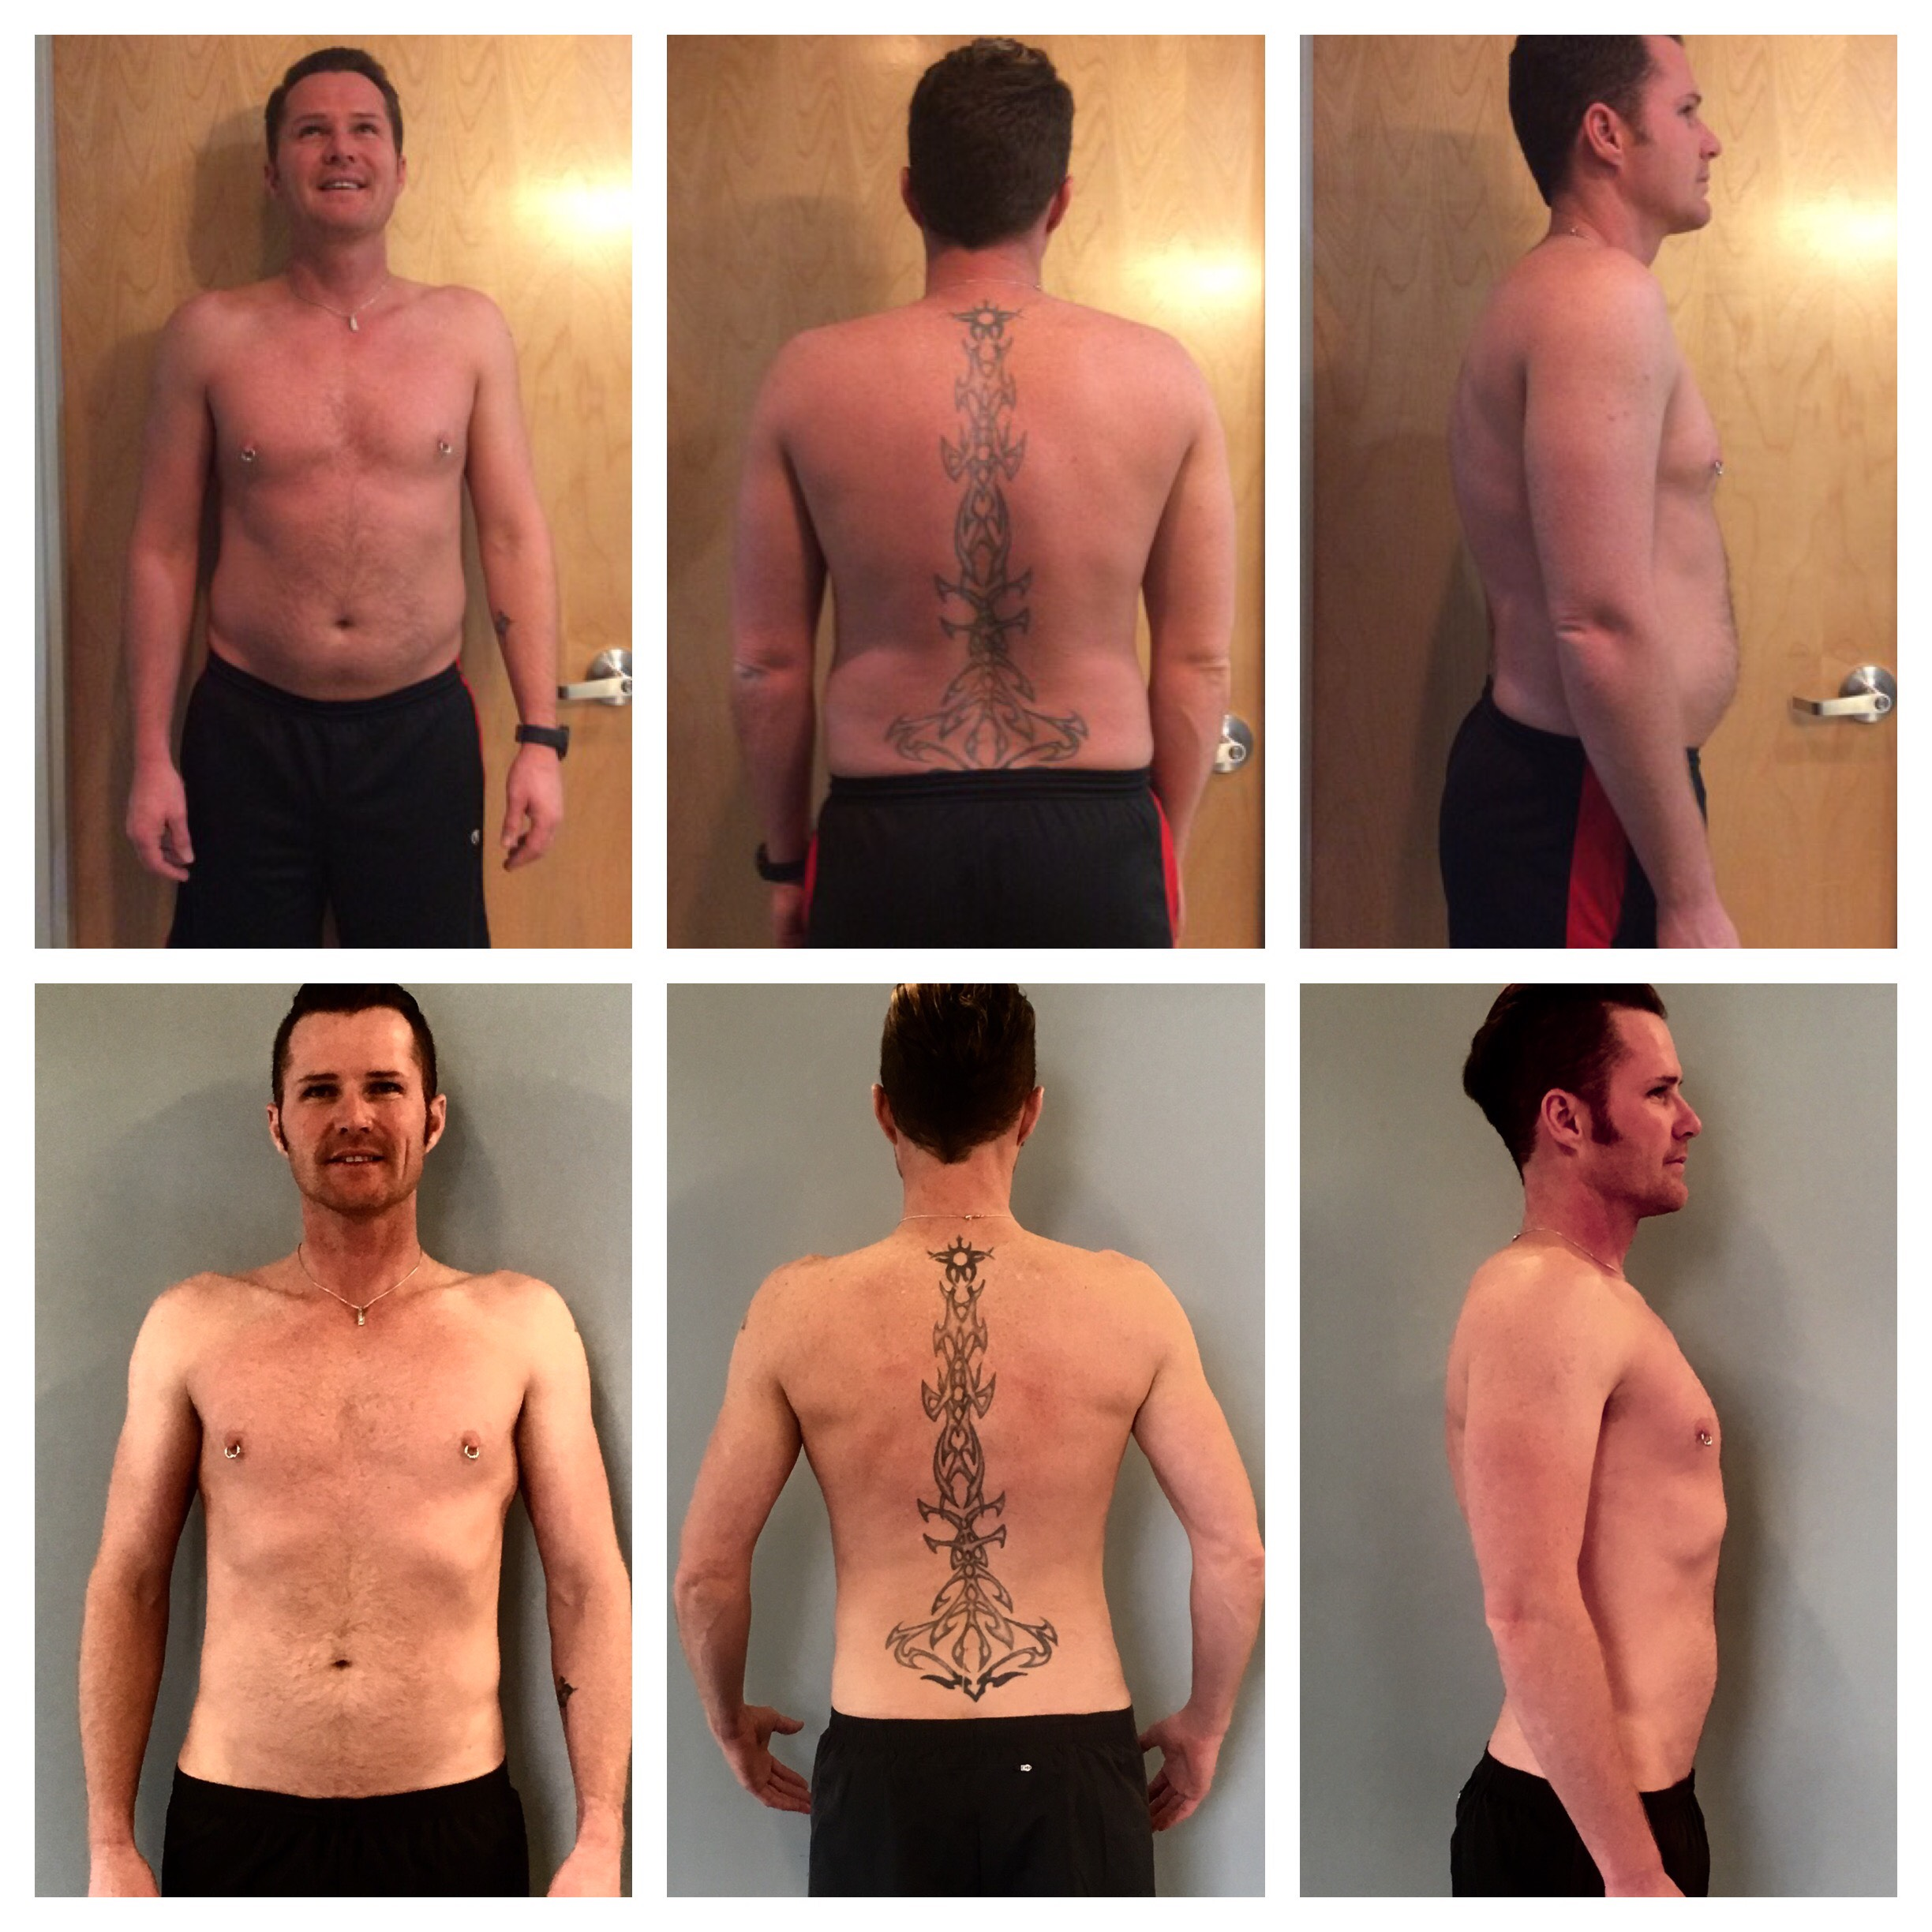 Michael lost 40 lbs in 8 months.